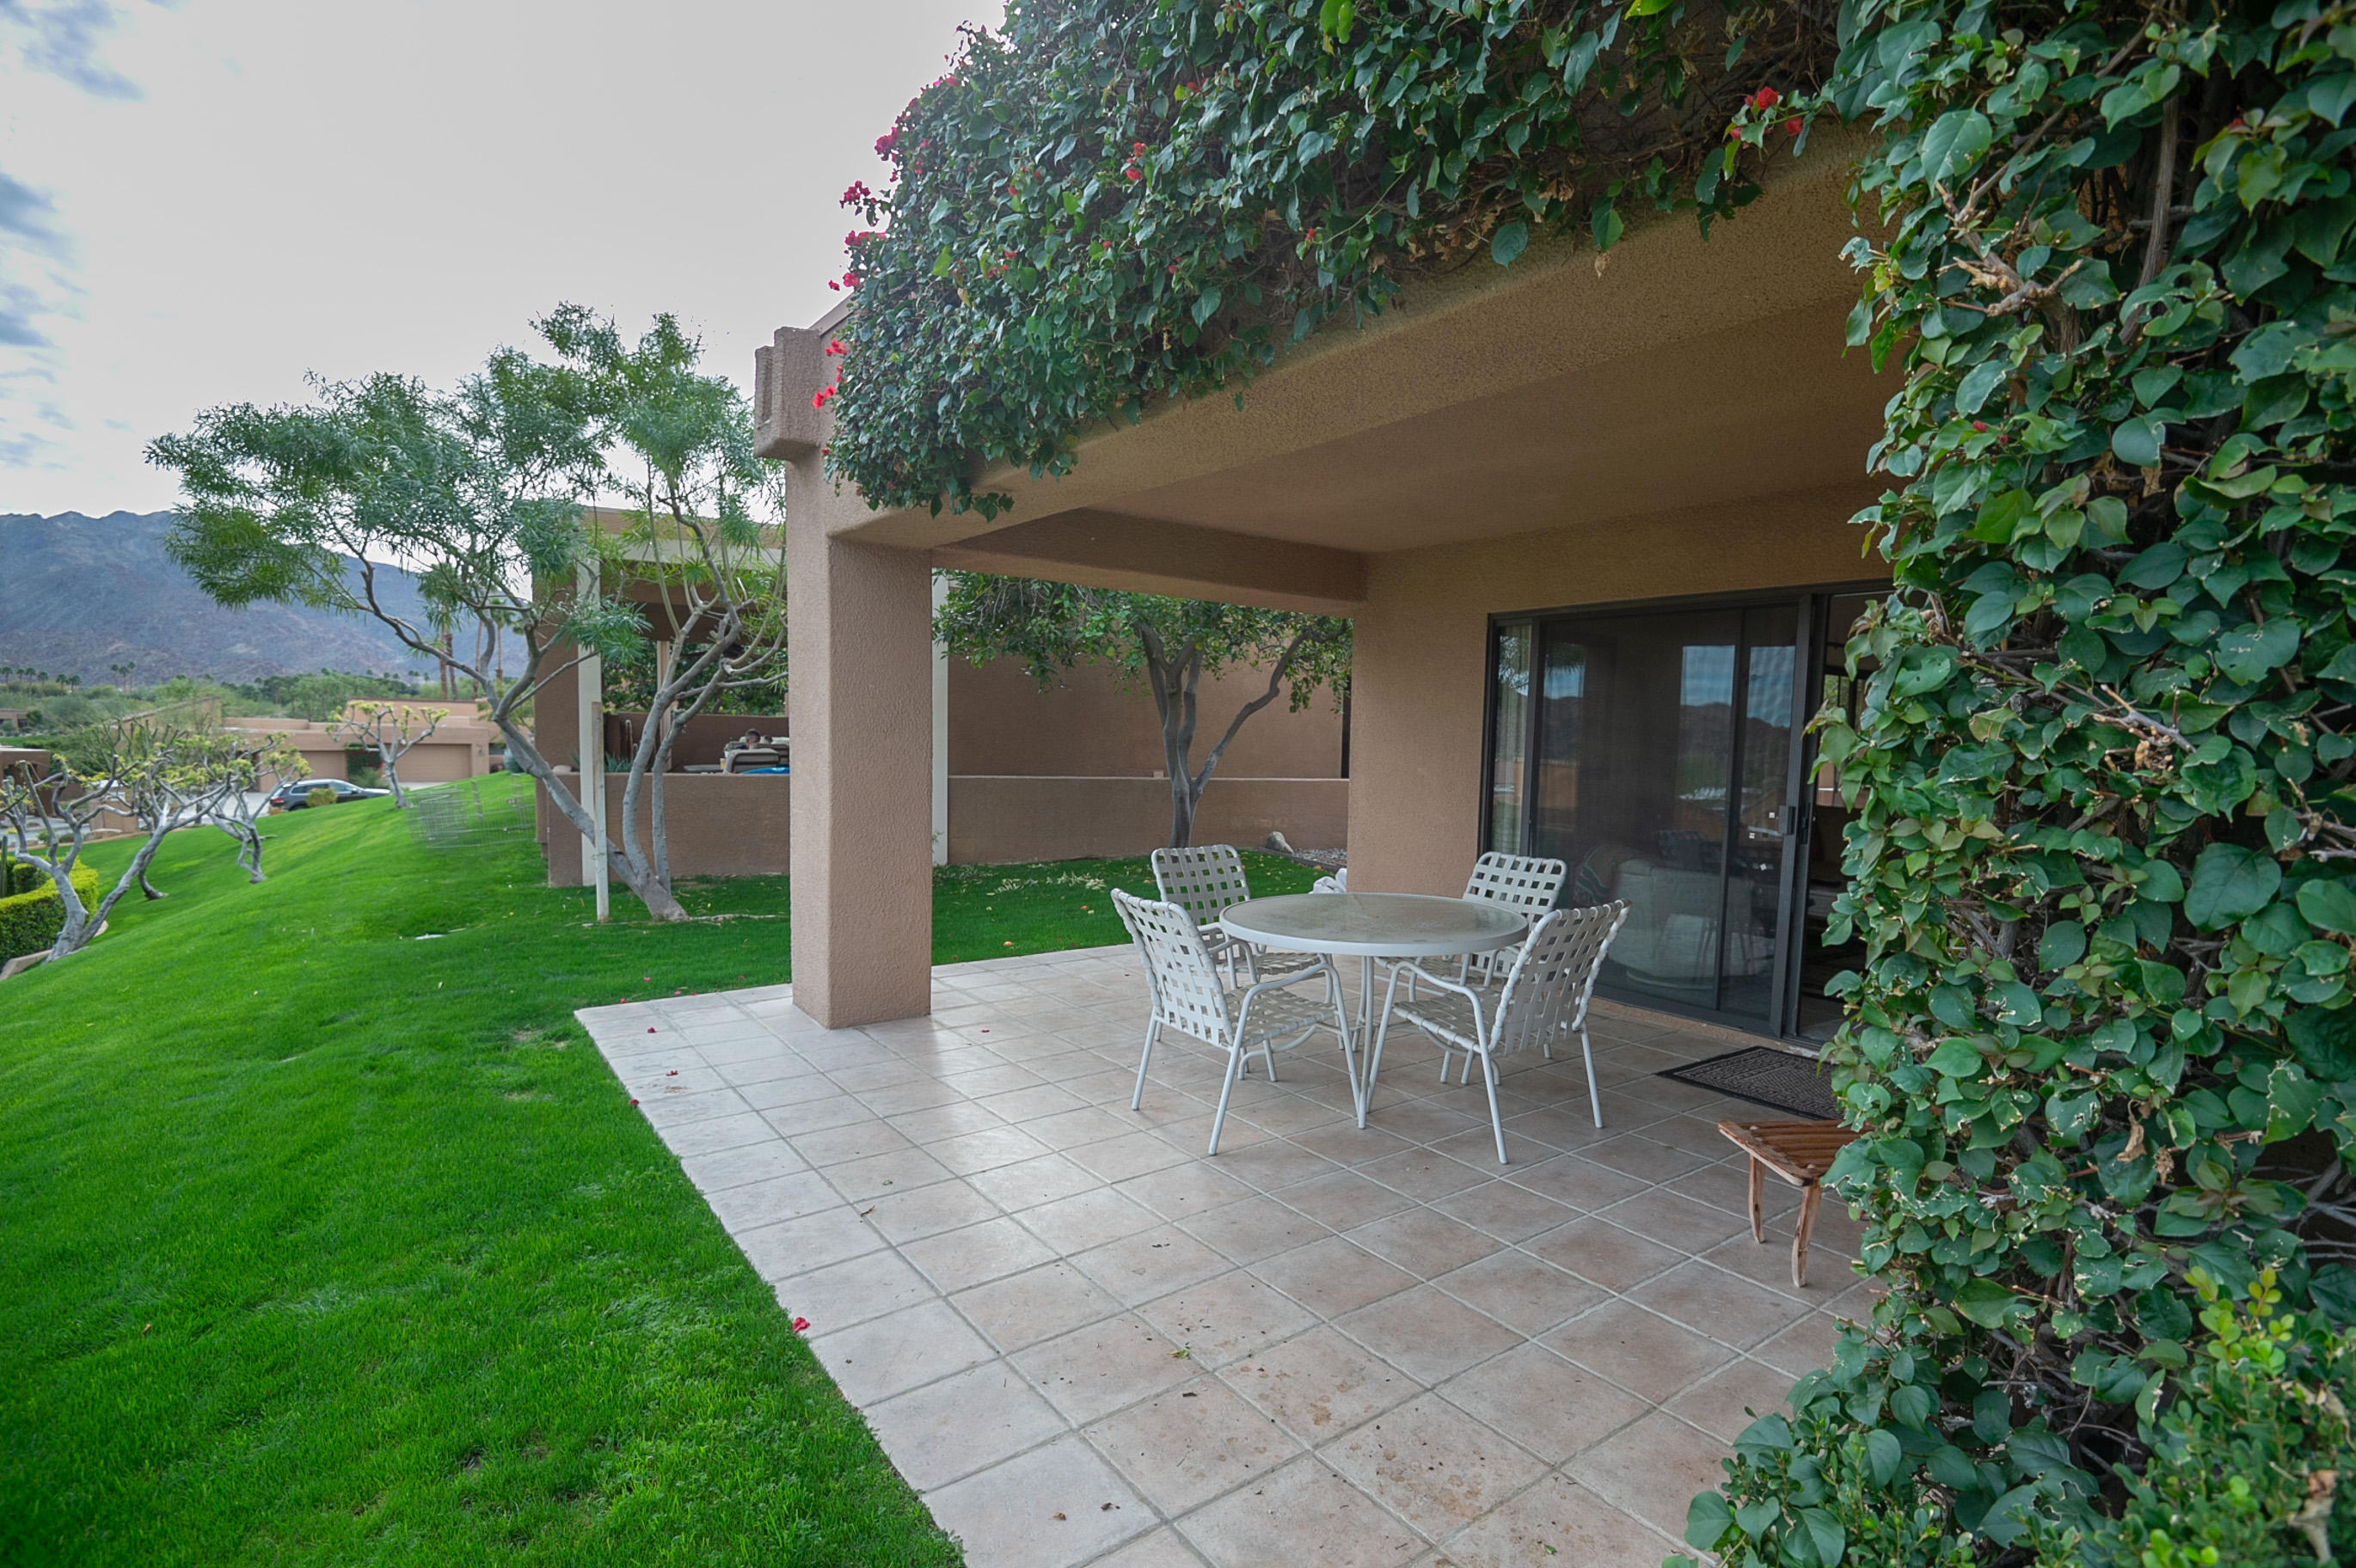 48832 Cassia Place, Palm Desert, California 92260, 2 Bedrooms Bedrooms, ,2 BathroomsBathrooms,Residential,For Sale,48832 Cassia Place,219037648